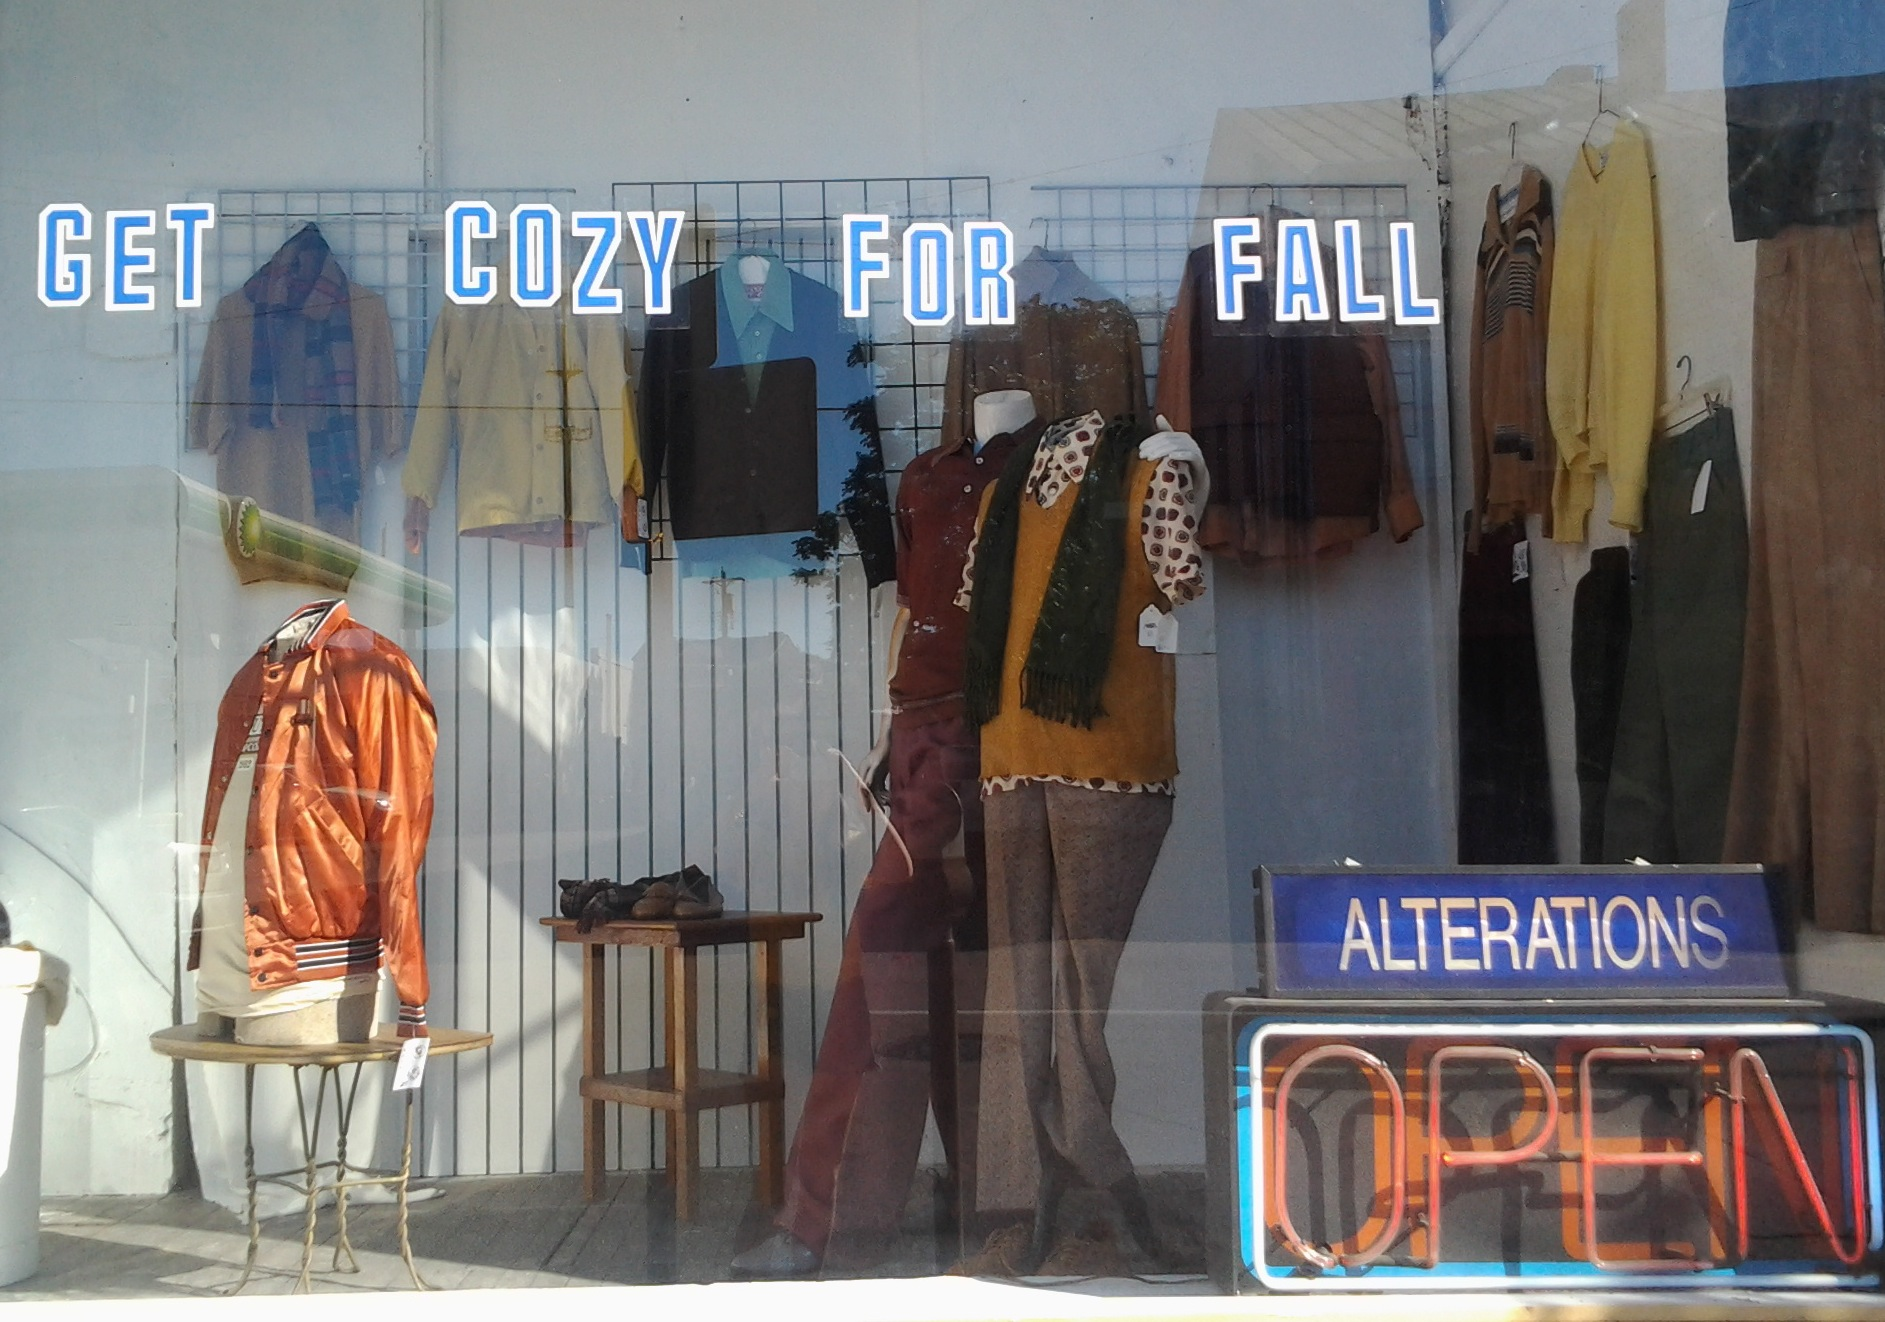 At Casablanca Vintage, autumn decoration for the window display is inducing us to get cozy via stickers.